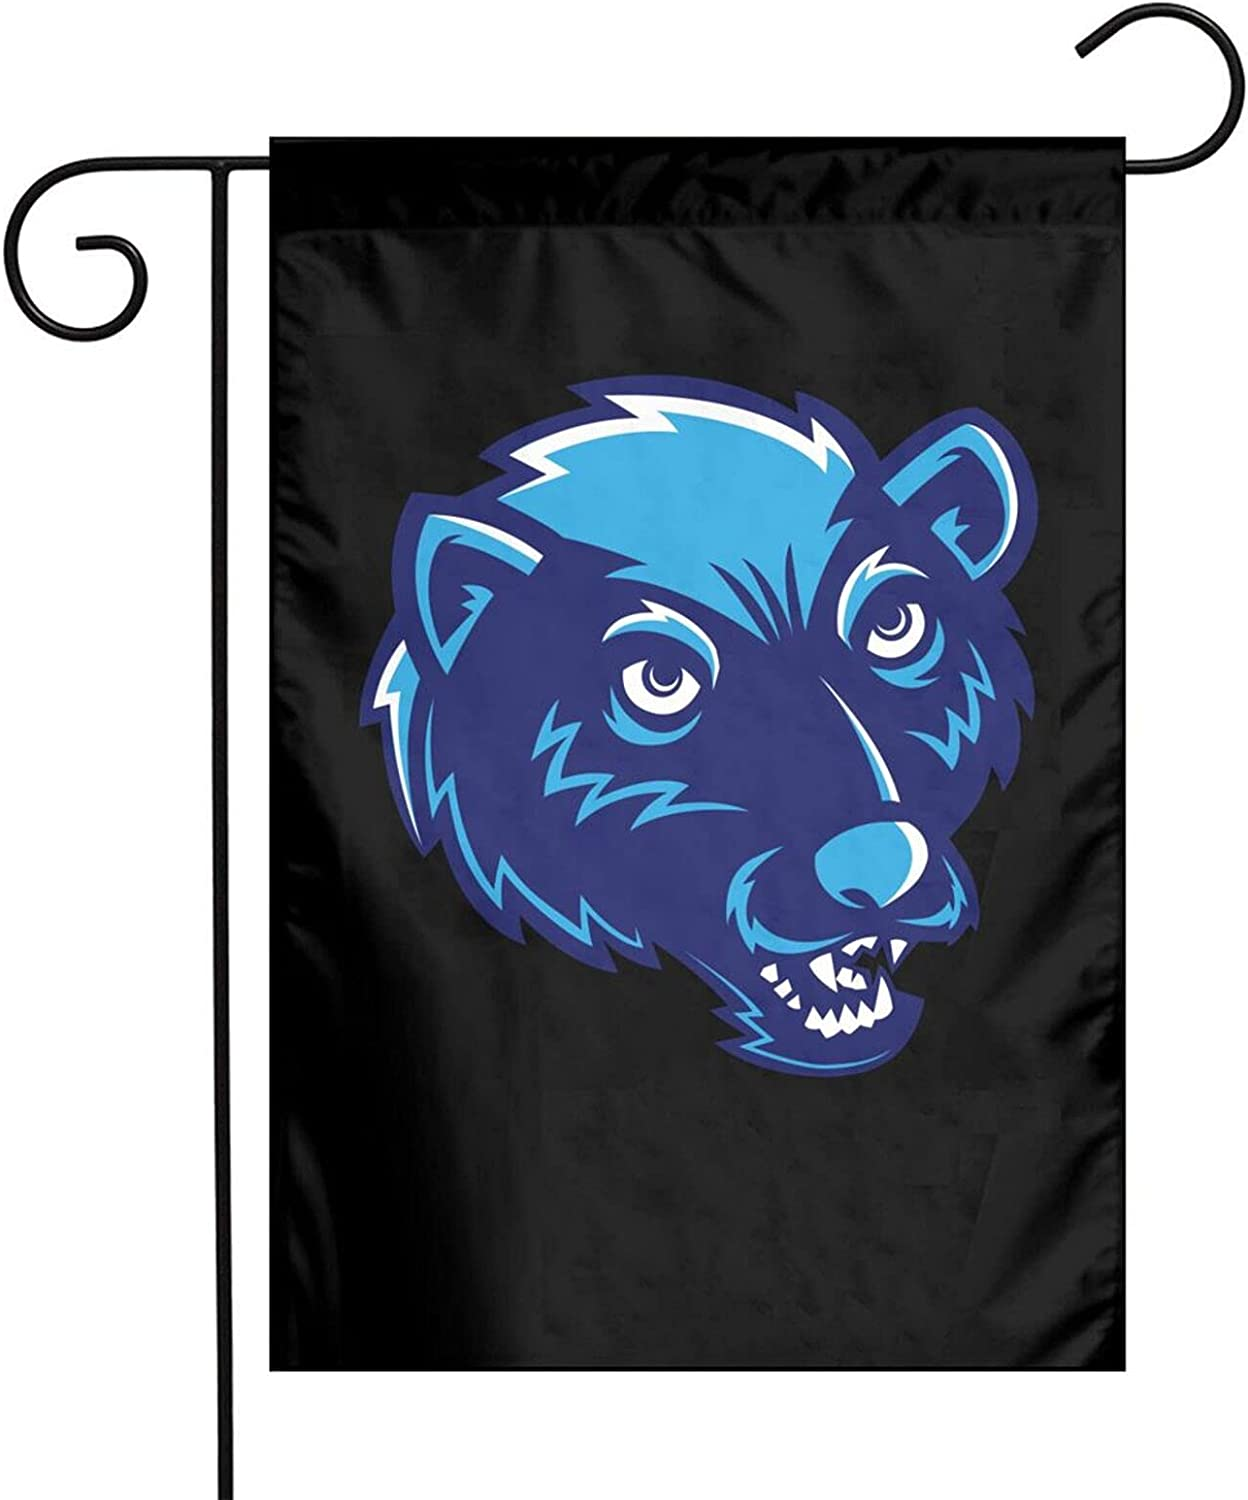 Inspier White Nerdy Grizzly Head Garden Flag 12 X 18 Inch Flag Welcome Garden Flag Vertical Double Sided for Yard Decoration